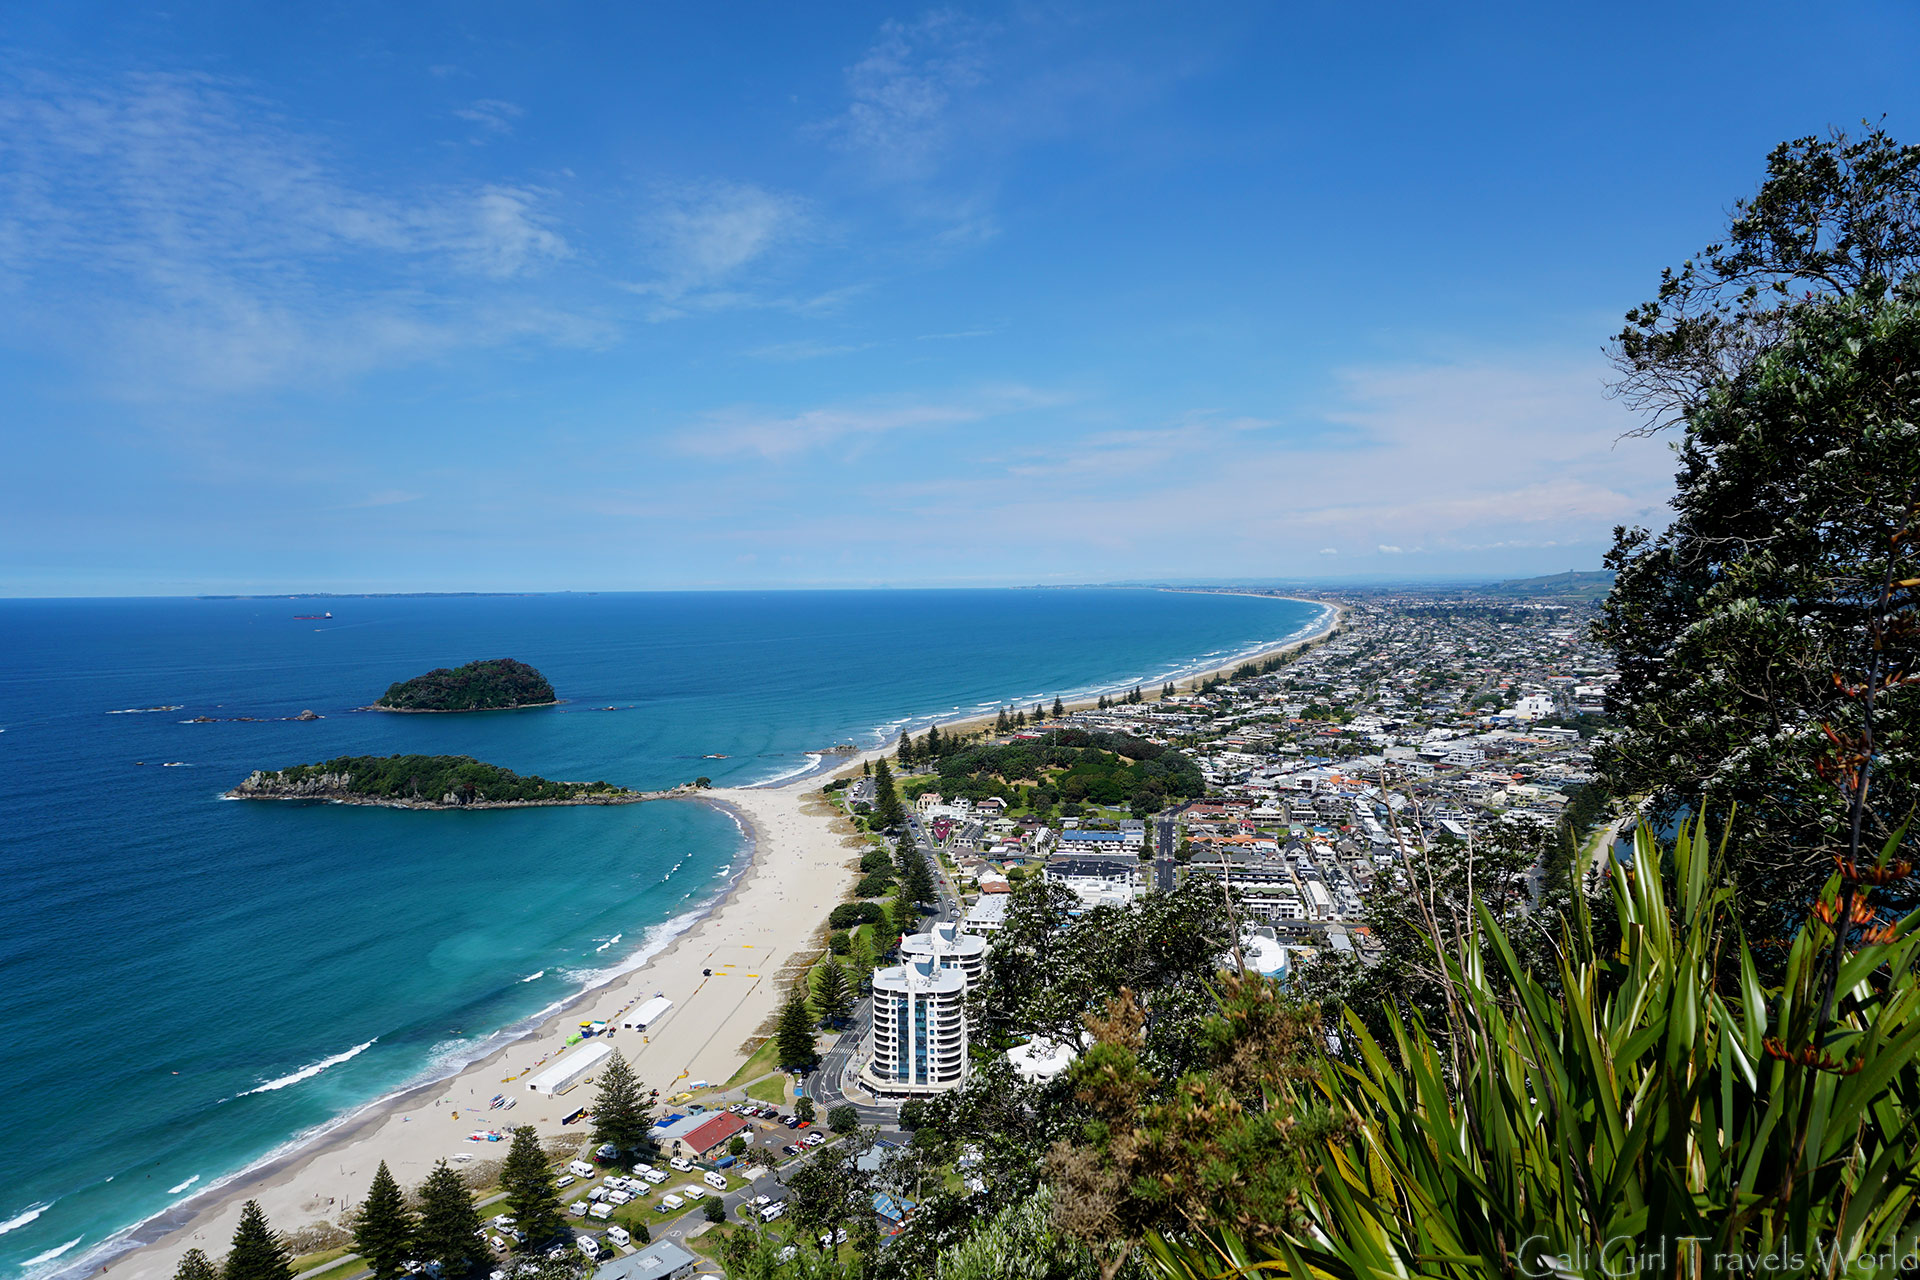 At Mount Maunganui Summit with a beautiful view of Tauranga below, in the North Island of New Zealand.